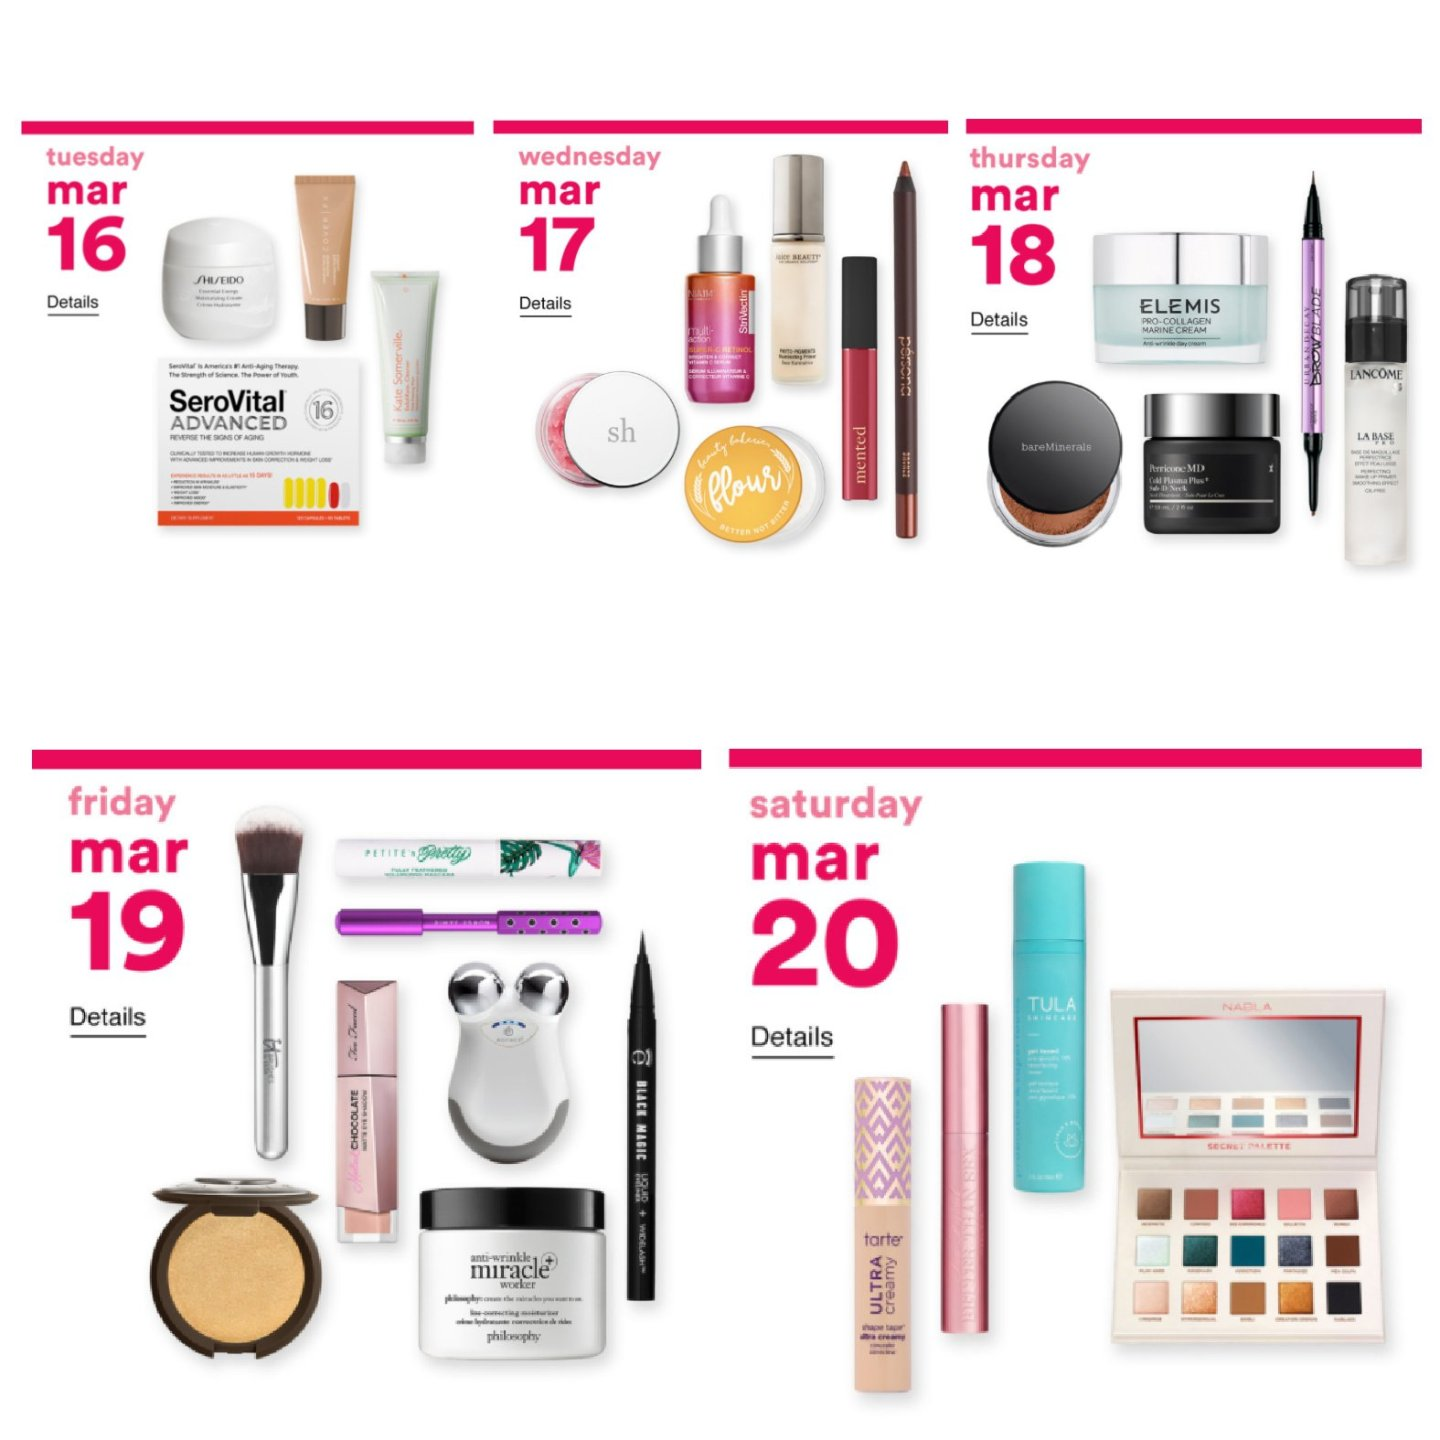 Beauty Sales at Target & Ulta